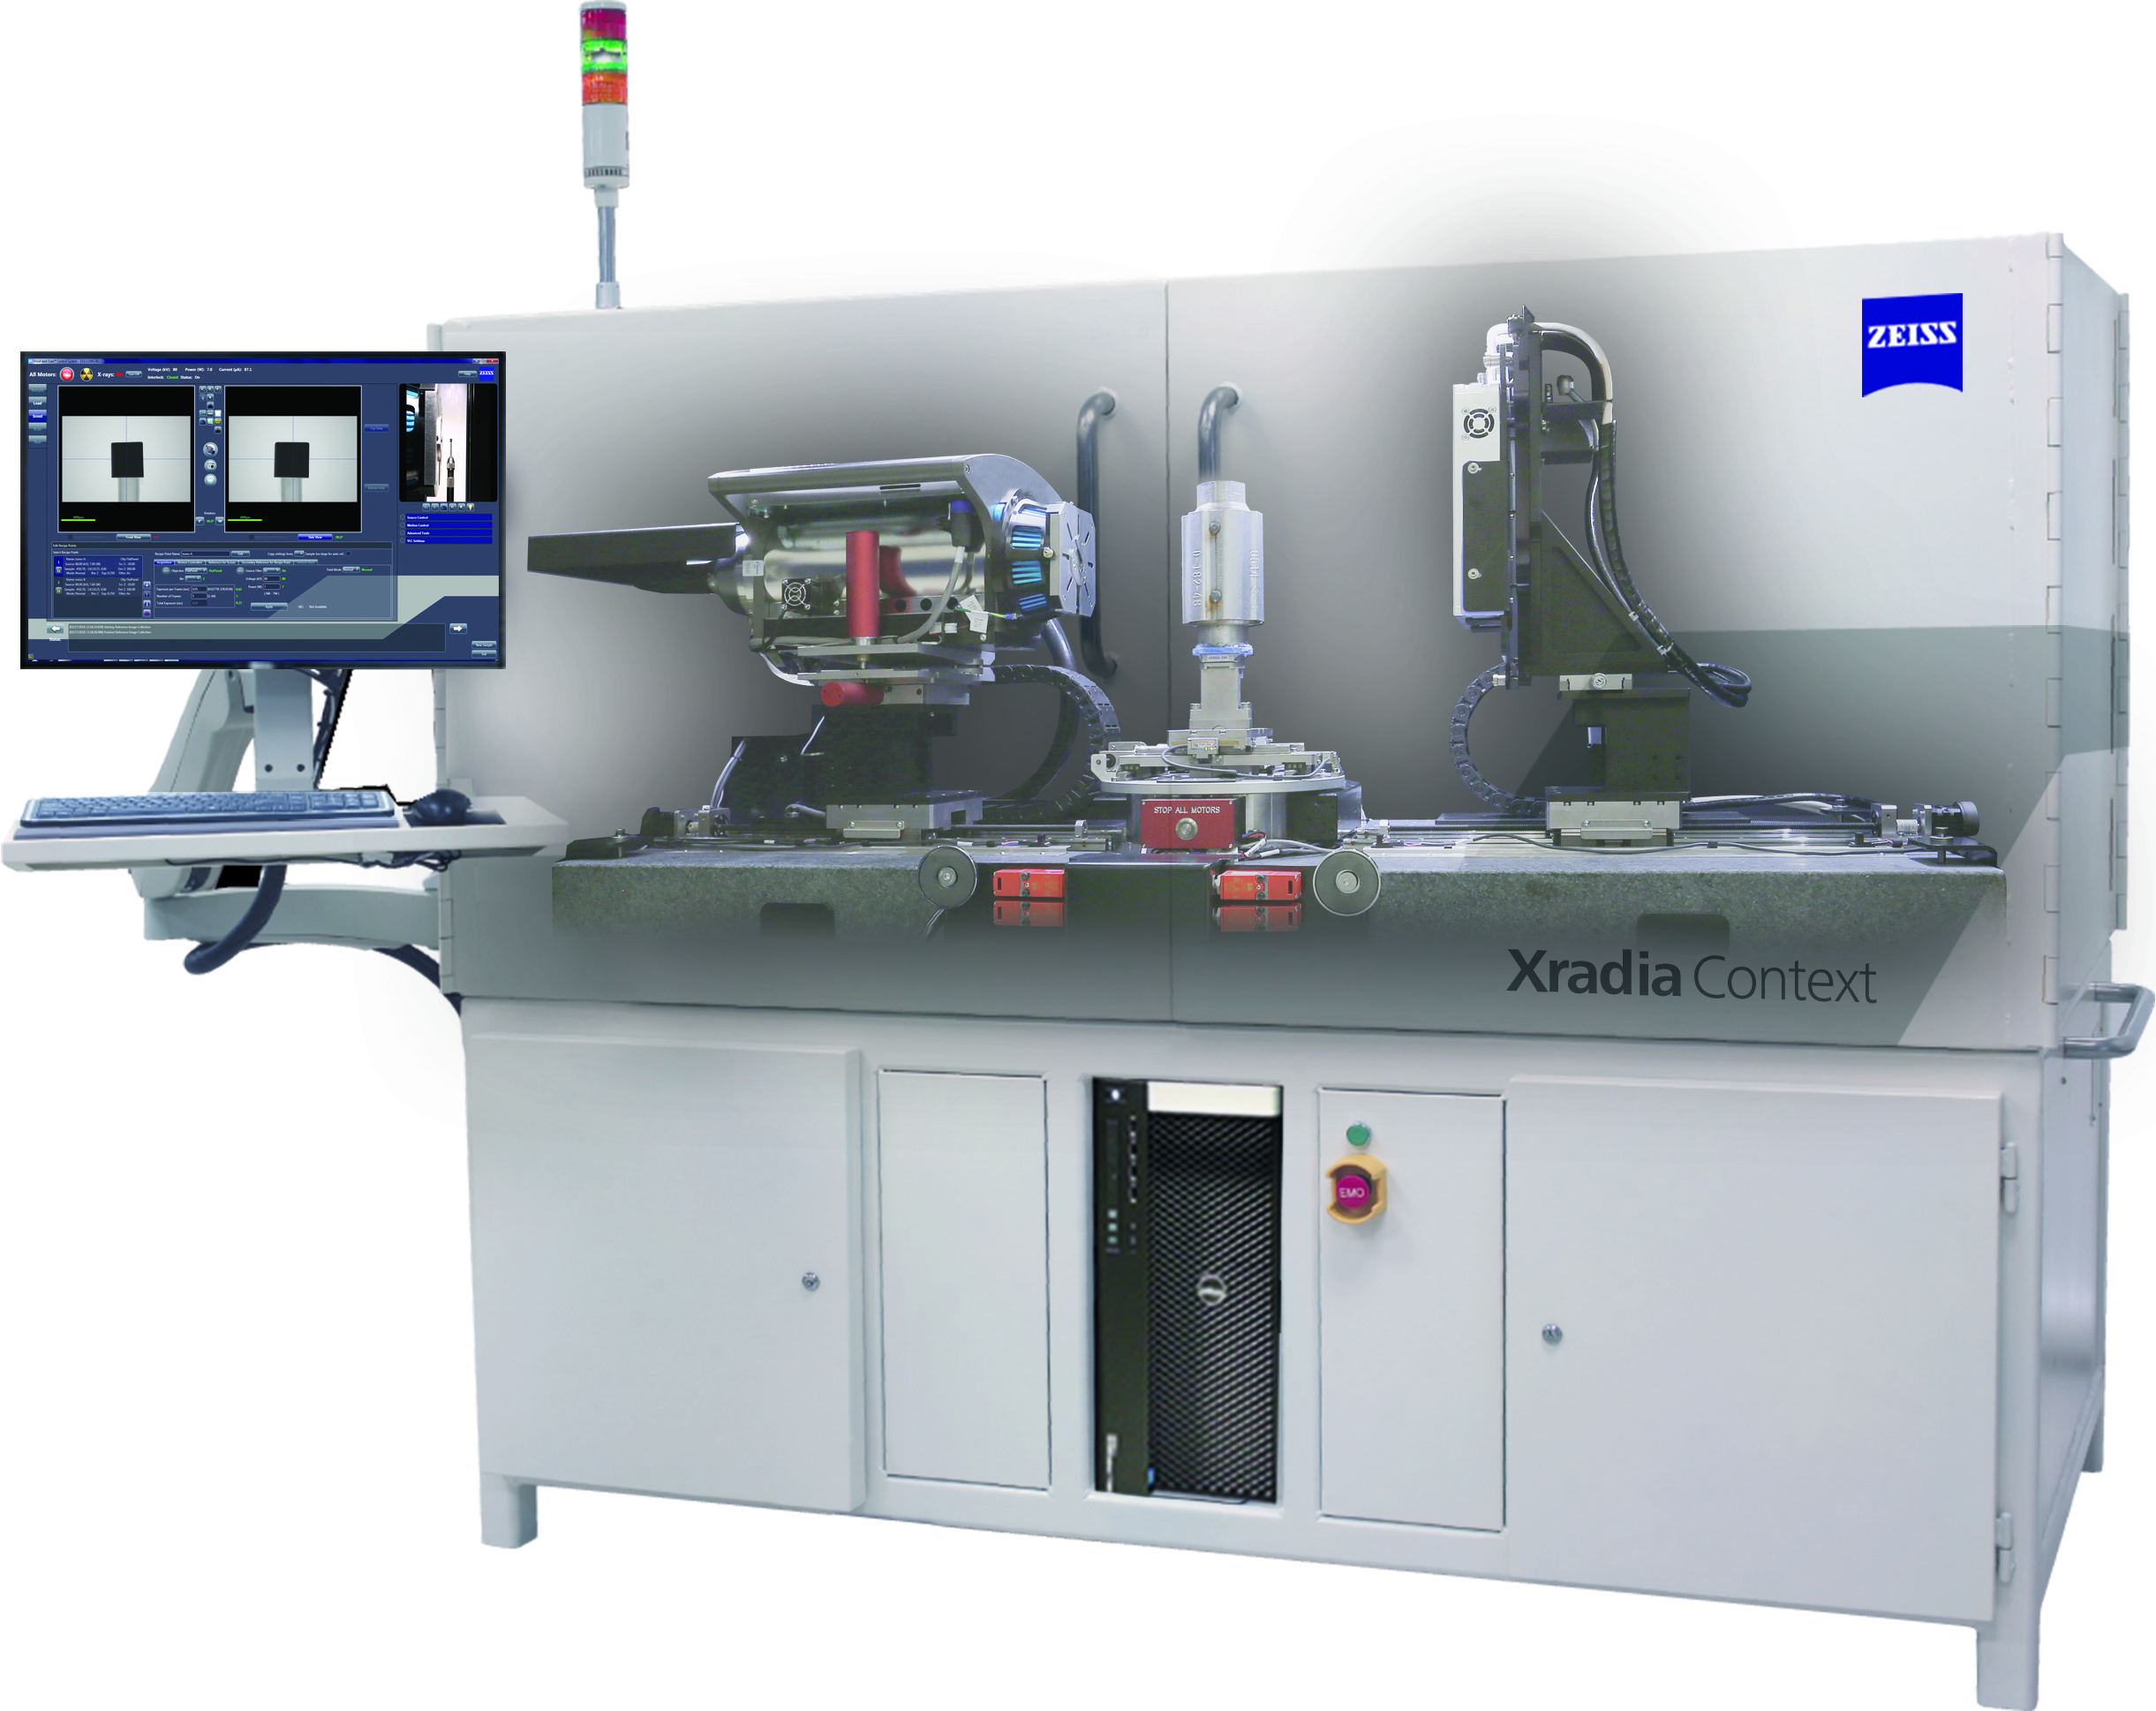 3D X-ray microCT system